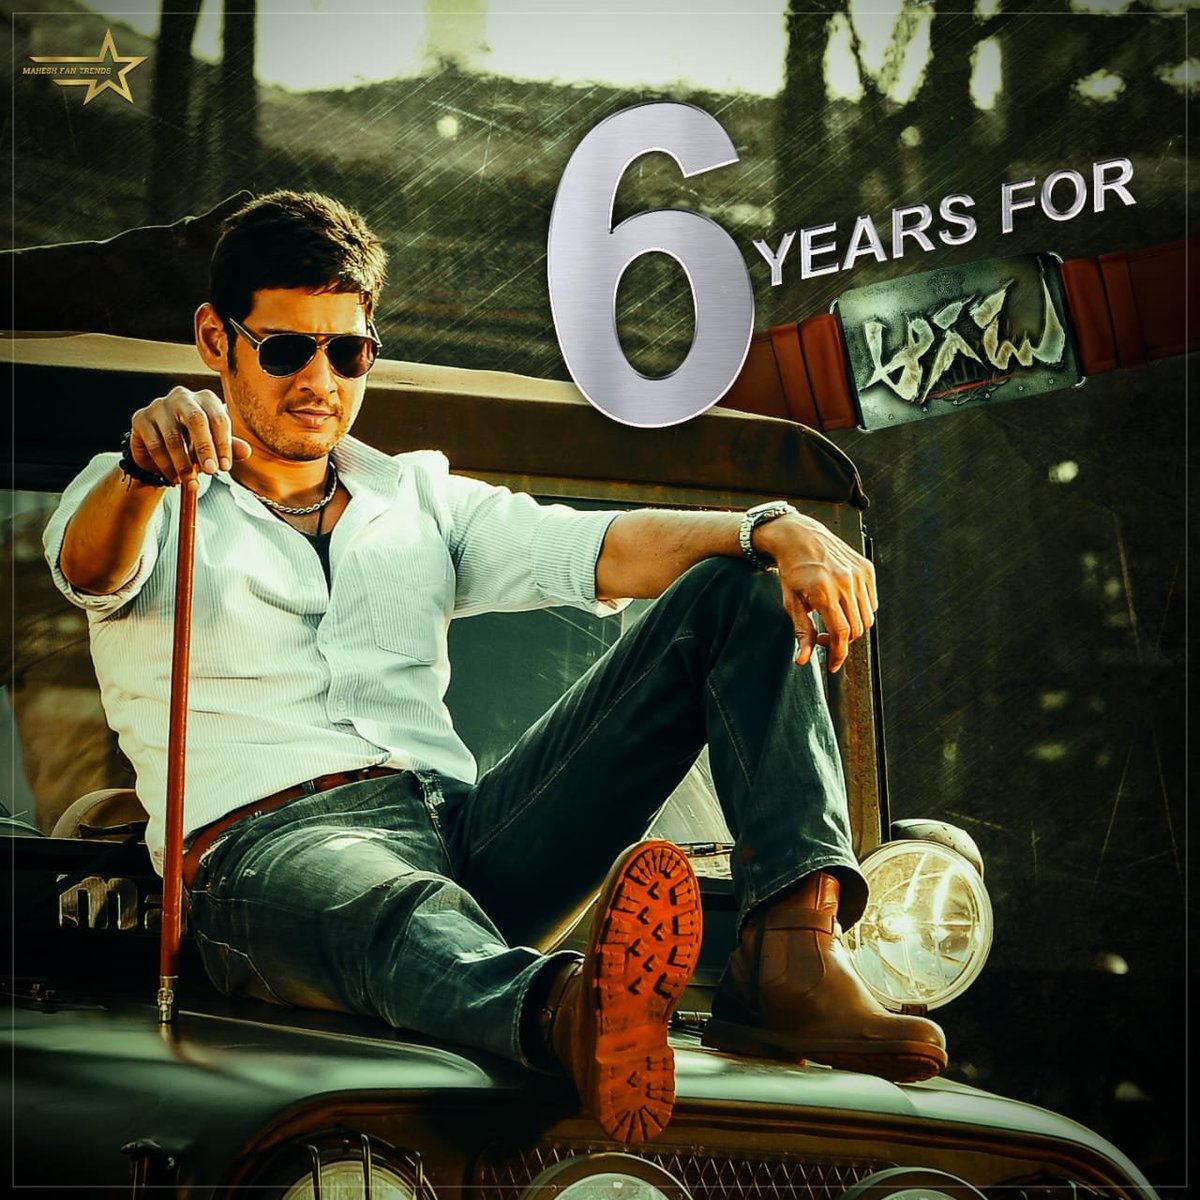 On This Day 6 years back superstar @urstrulyMahesh gari #Aagadu Movie Released & Have All Time Day 1 Record.. 😍😍😎😎😎🤗🤗🤗🙏🙏  #6YearsForAagadu #DookuduTrendOnSep22nd #SarkaruVaariPaata 🔔  #MaheshBabu   Super🌟@urstrulyMahesh garu @MusicThaman @14ReelsPlus @MBofficialTeam https://t.co/kgmOgMTjpV